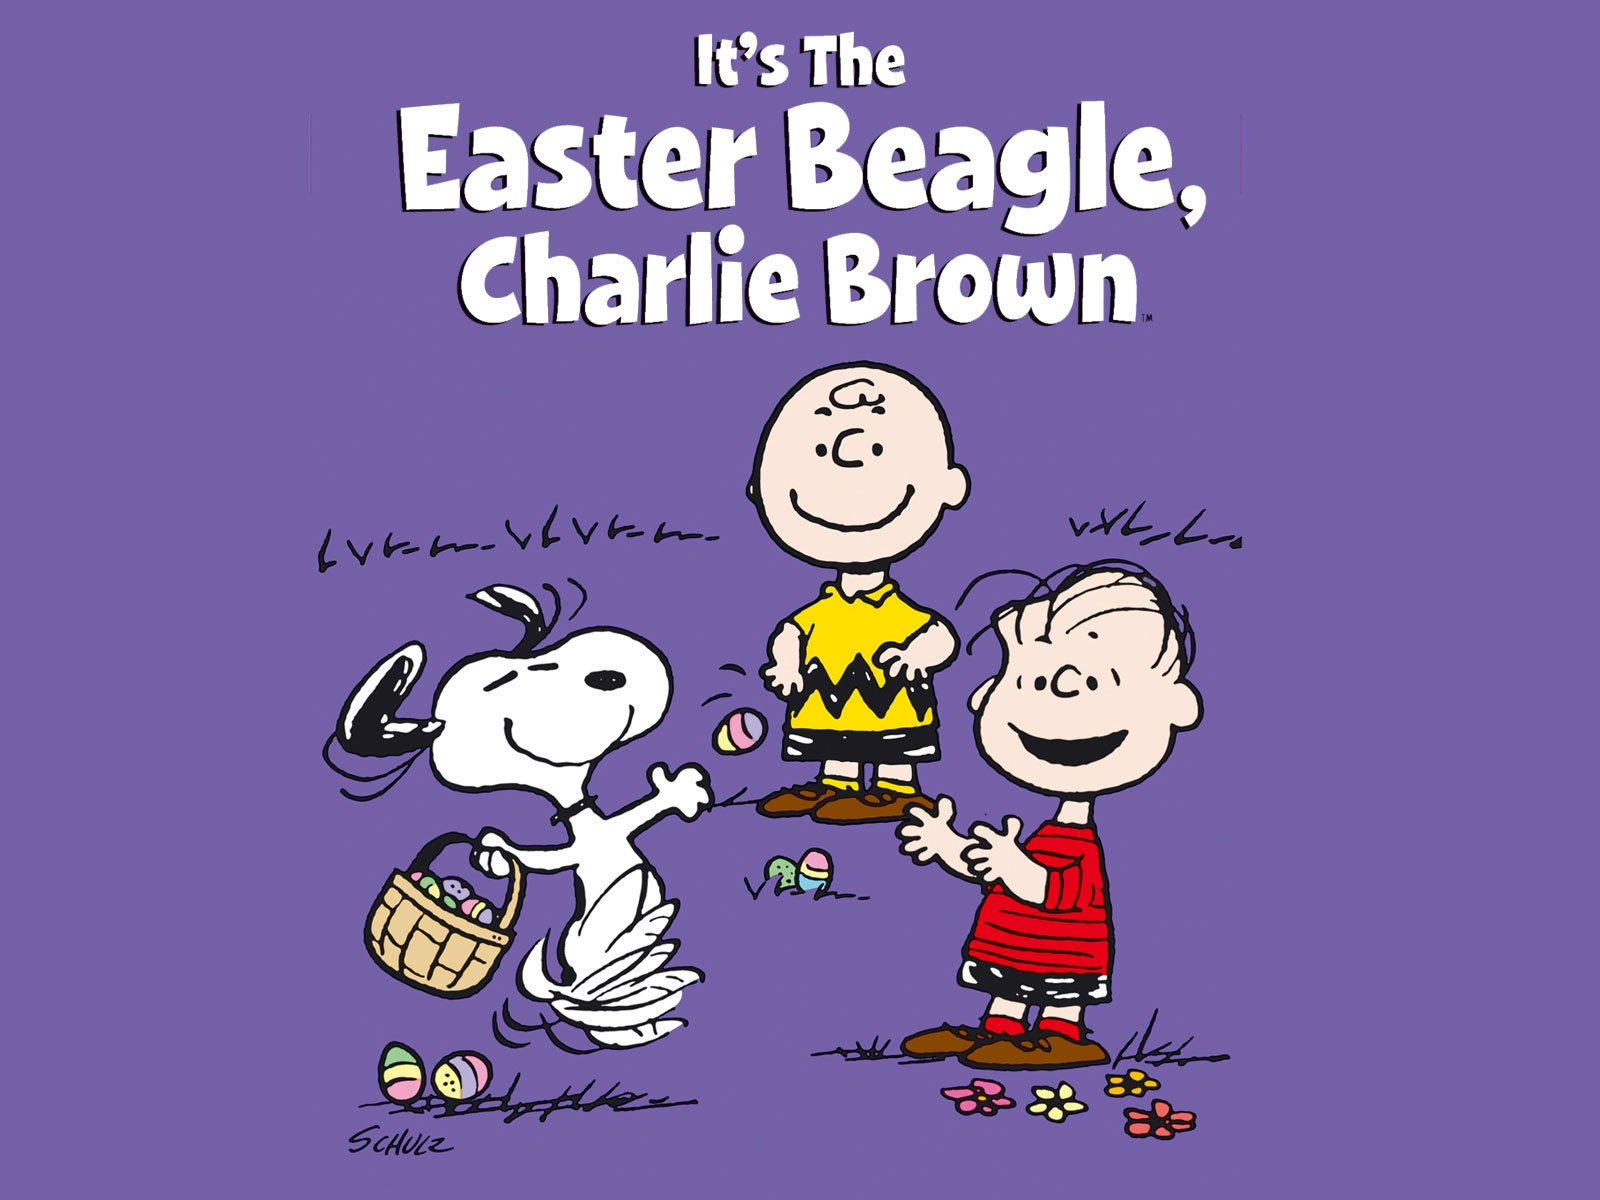 Amazoncom Watch Its the Easter Beagle Charlie Brown Prime Video 1600x1200